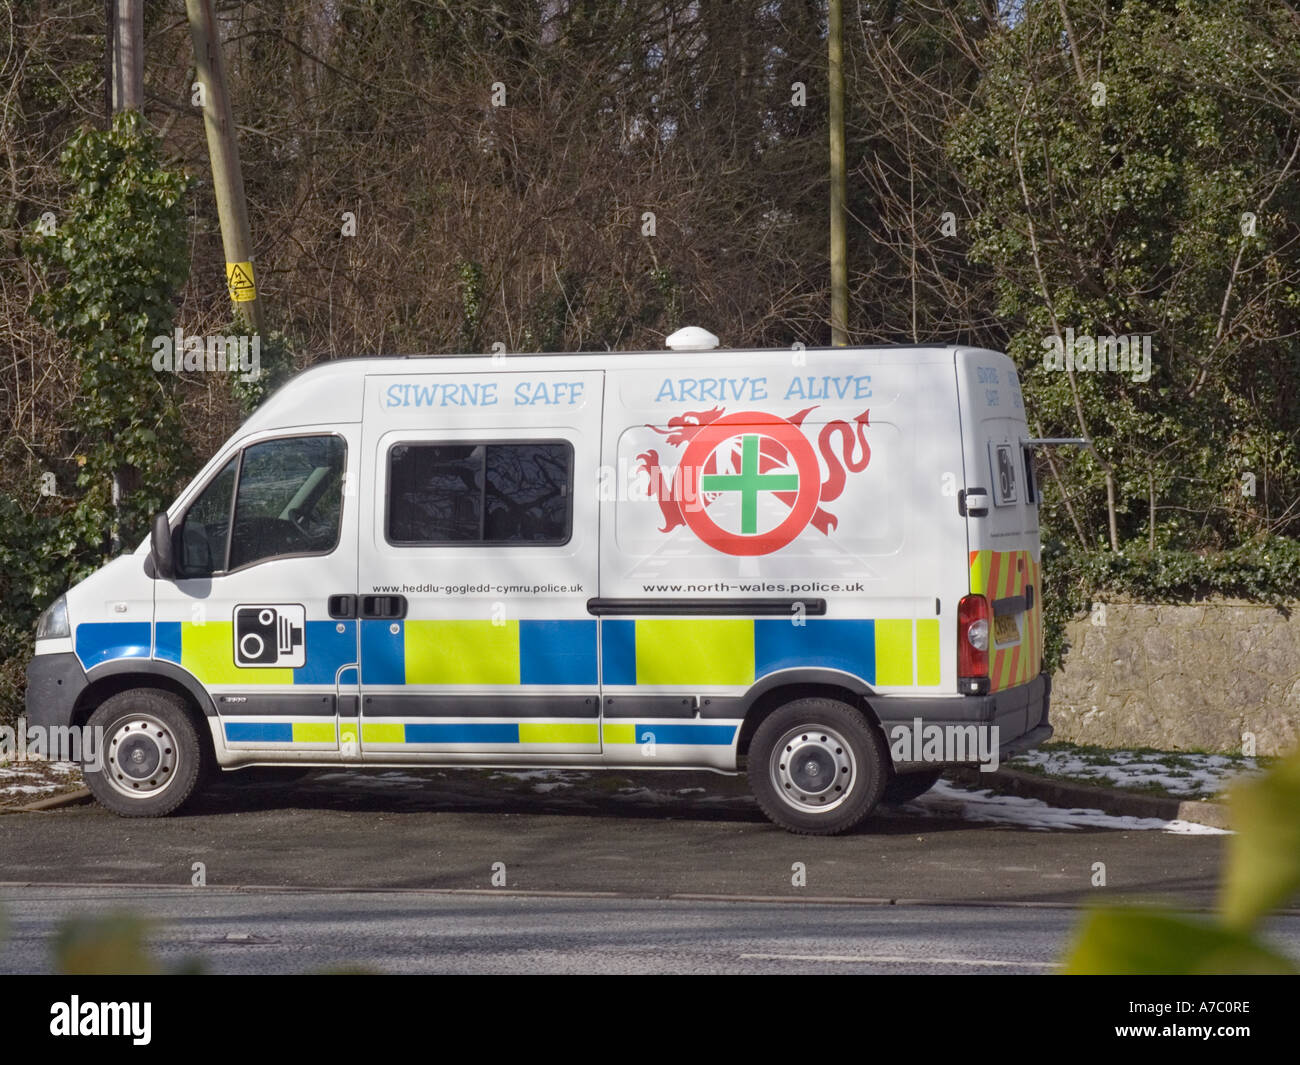 Mobile Speed Camera Van Stock Photos & Mobile Speed Camera